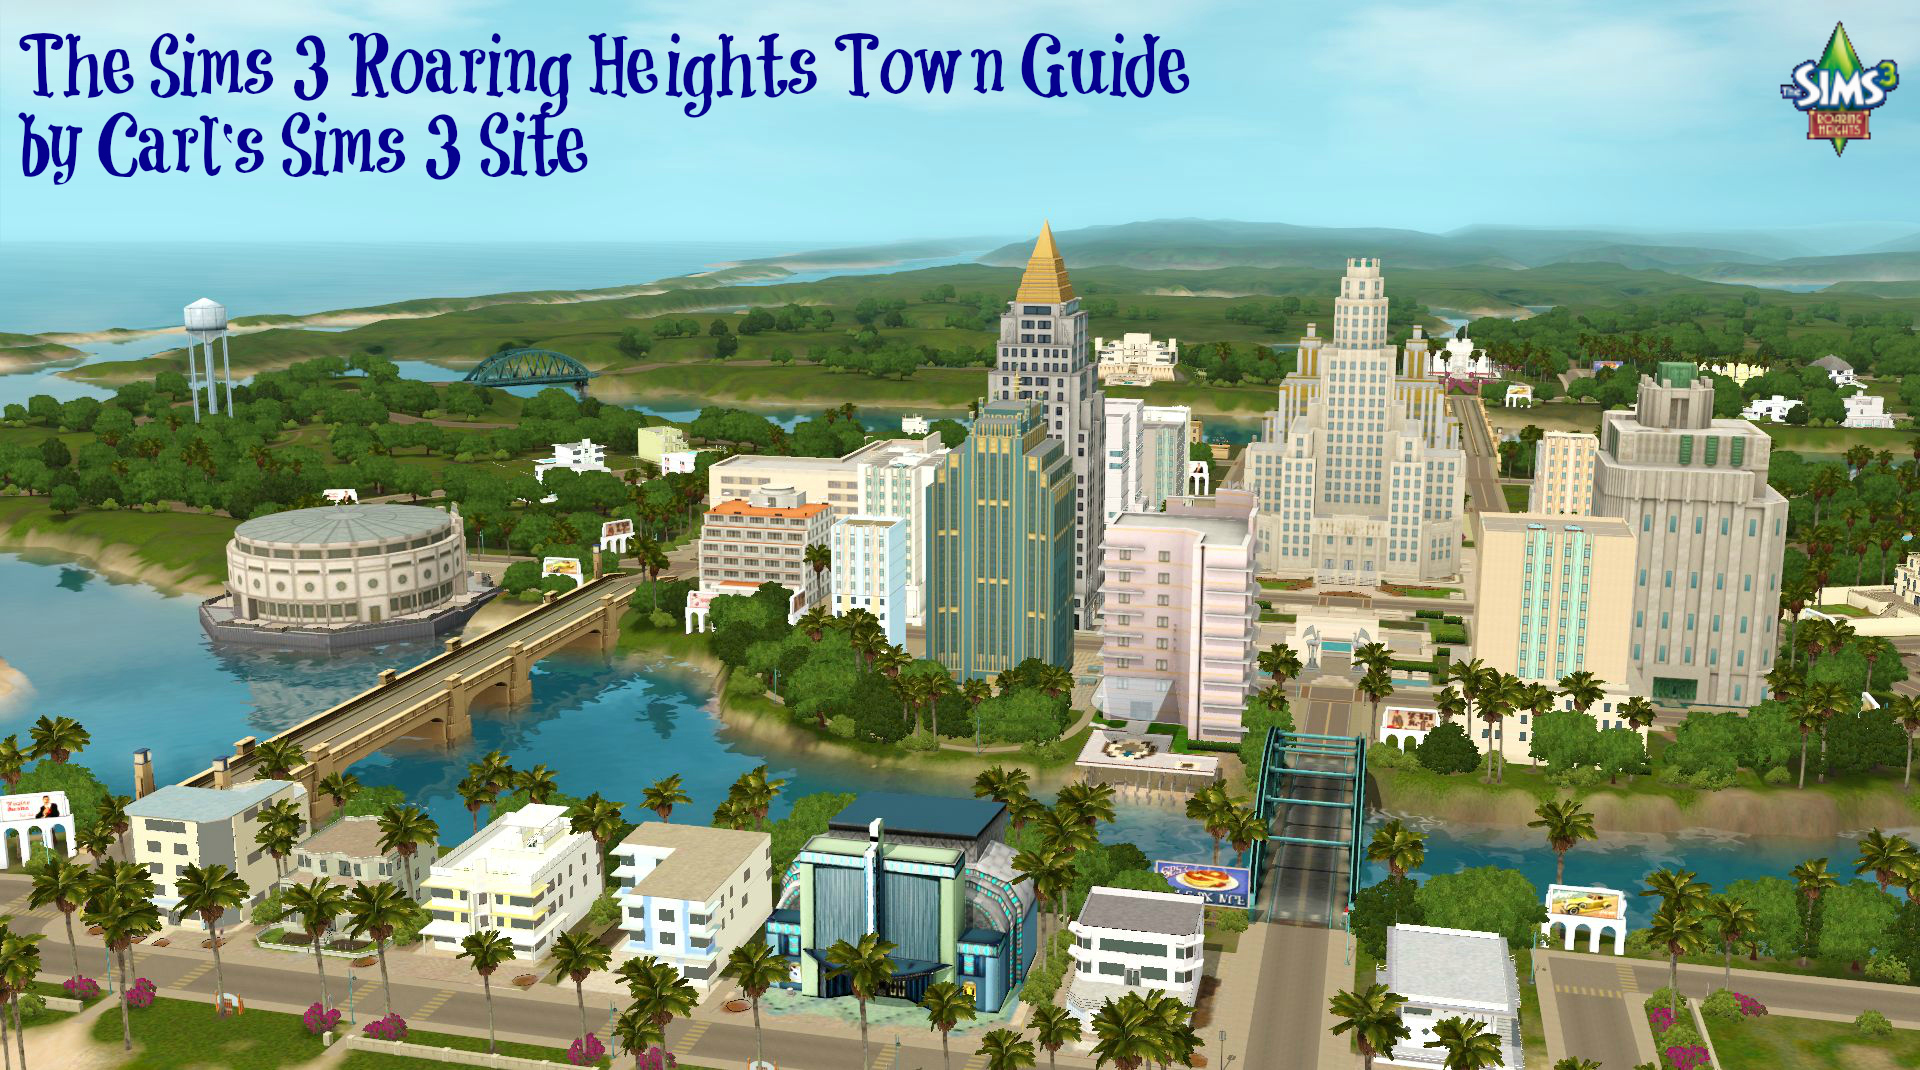 Sims 3 roaring heights world collectible maps rollercoasters the sims 3 roaring heights world a picture of the town publicscrutiny Gallery